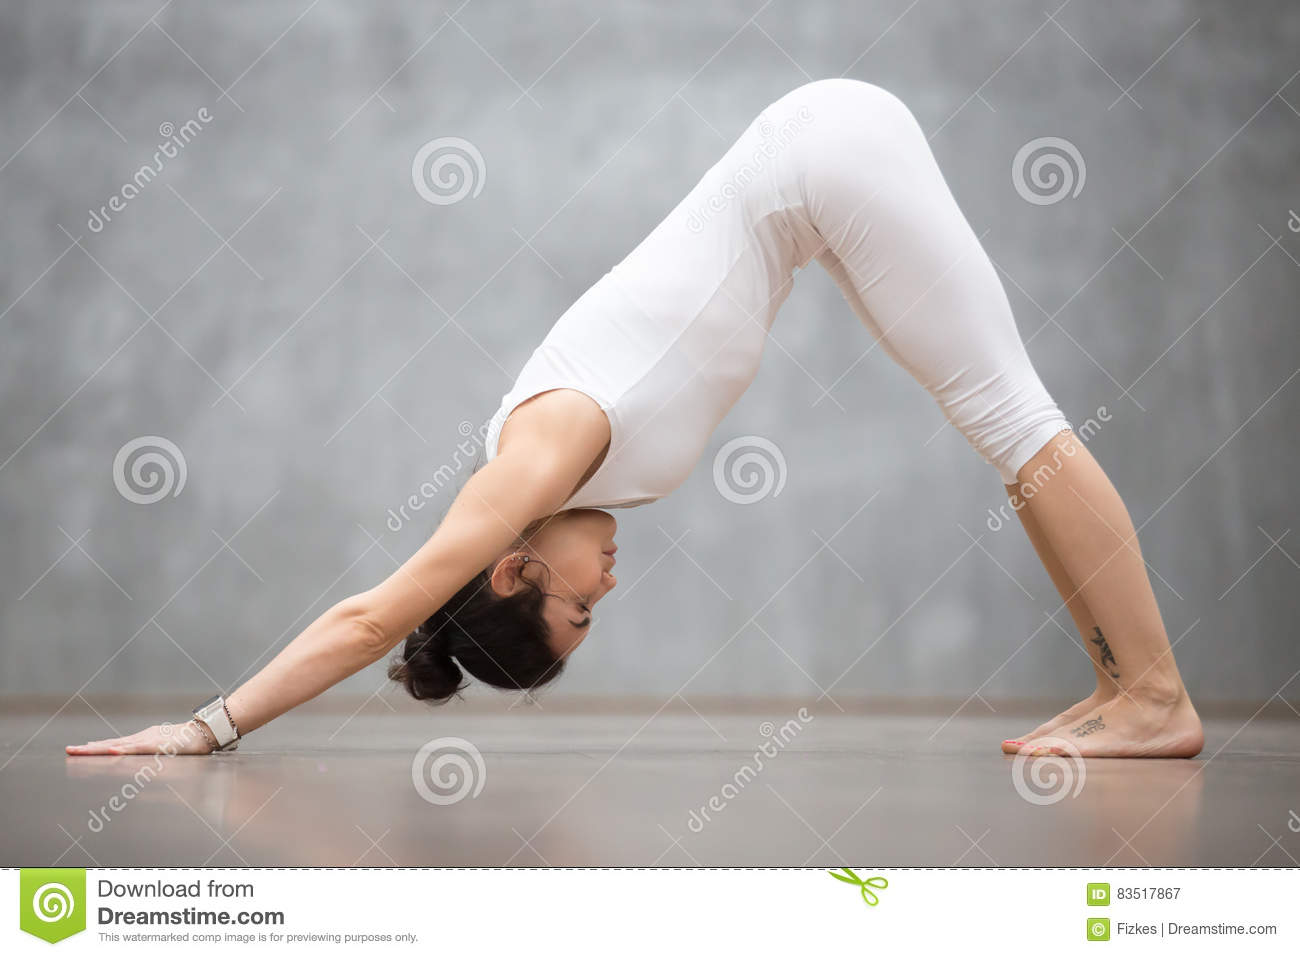 Beautiful Yoga Downward Facing Dog Pose Stock Image Image Of Muscle Club 83517867